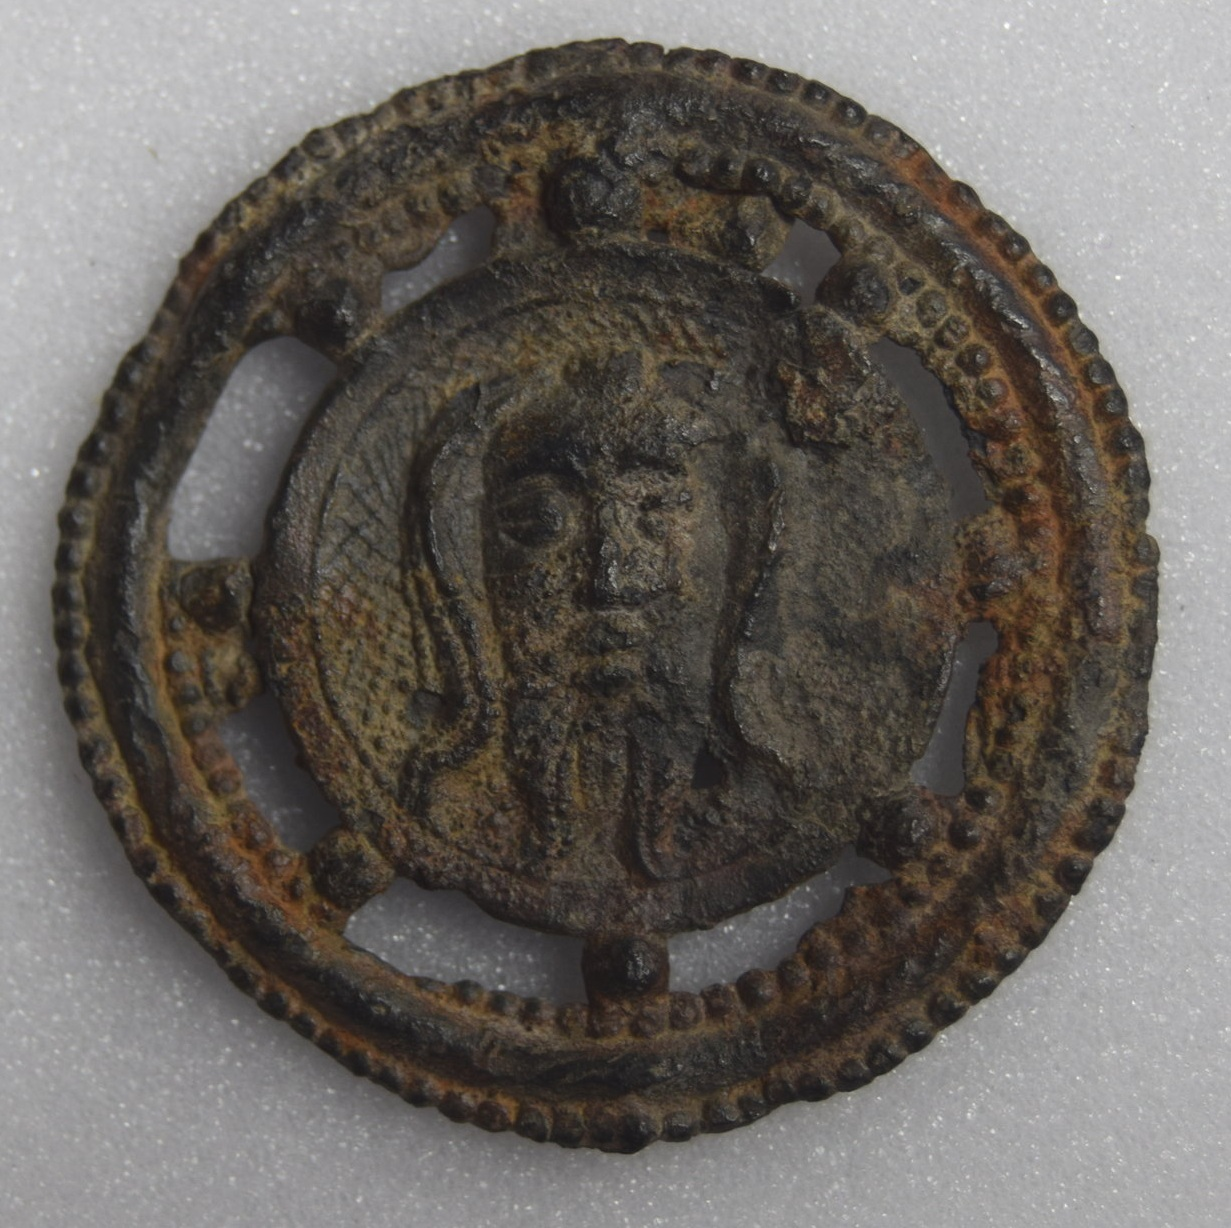 Tin Lead Alloy, Veronica Icon: countenance of Christ on a veil, surrounded by dots in round frame, Rome, 1000-1599, 310 x 400 mm. King's Lynn, Lynn Museum, PB 49 (Kunera 07520). Photo courtesy of Shannon Phaneuf.